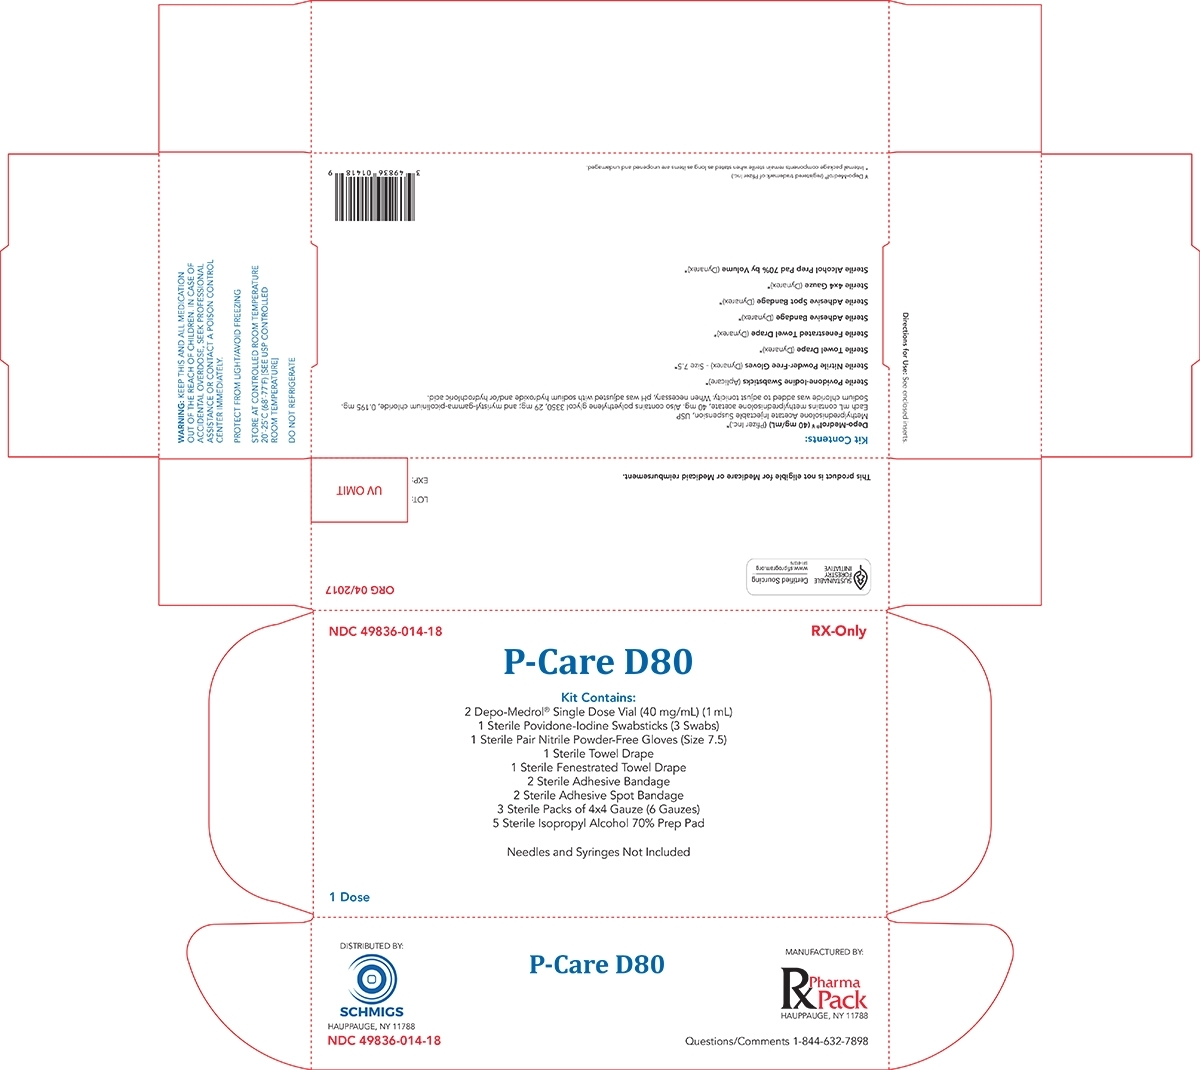 P-Care D80 (Rx Pharma-Pack, Inc.): Fda Package Insert, Page 3